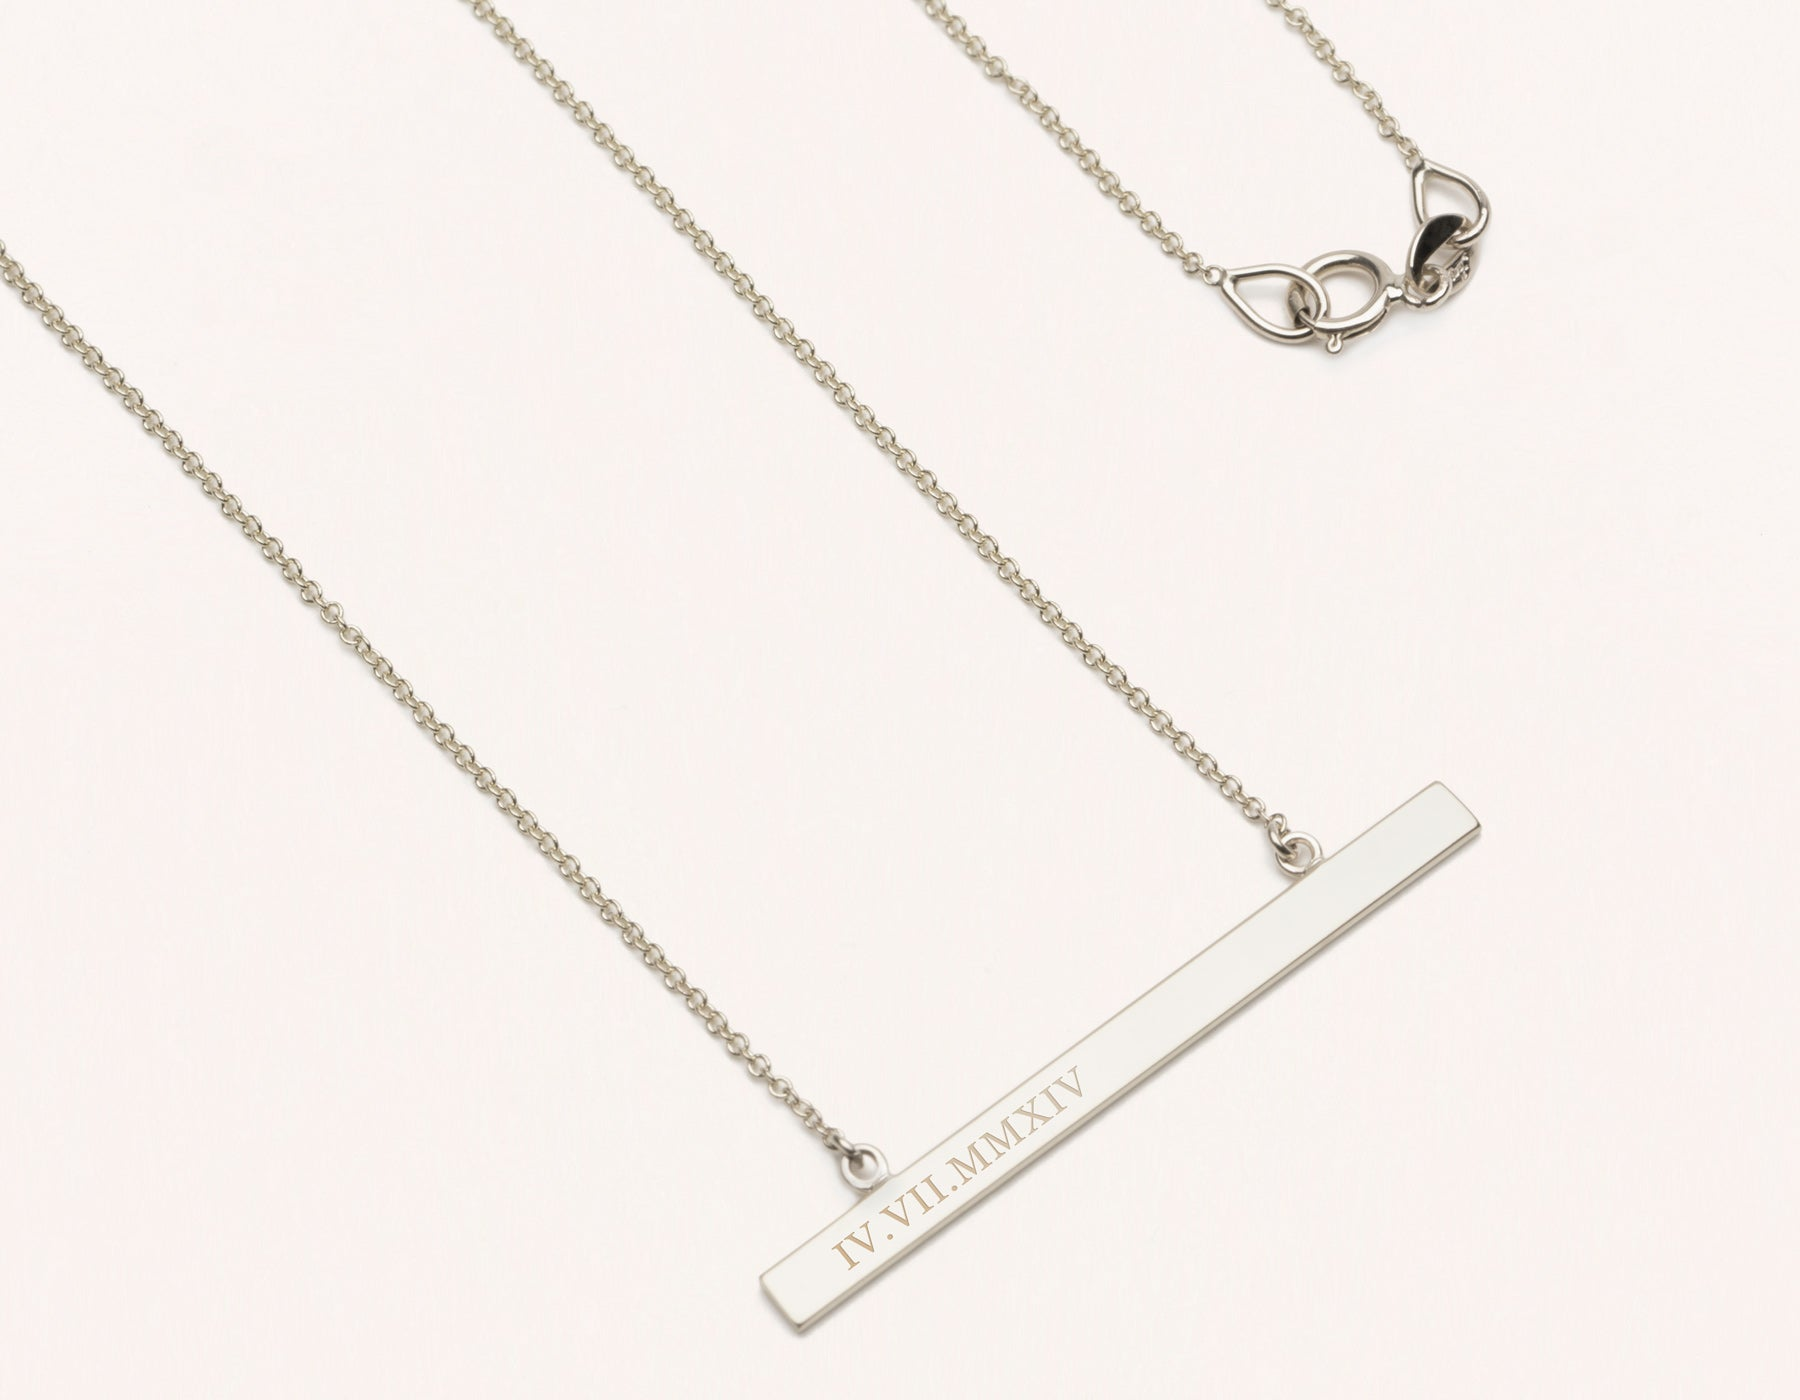 ren mono products gold accessories necklace jewelry minimal everything collections favor personal fill